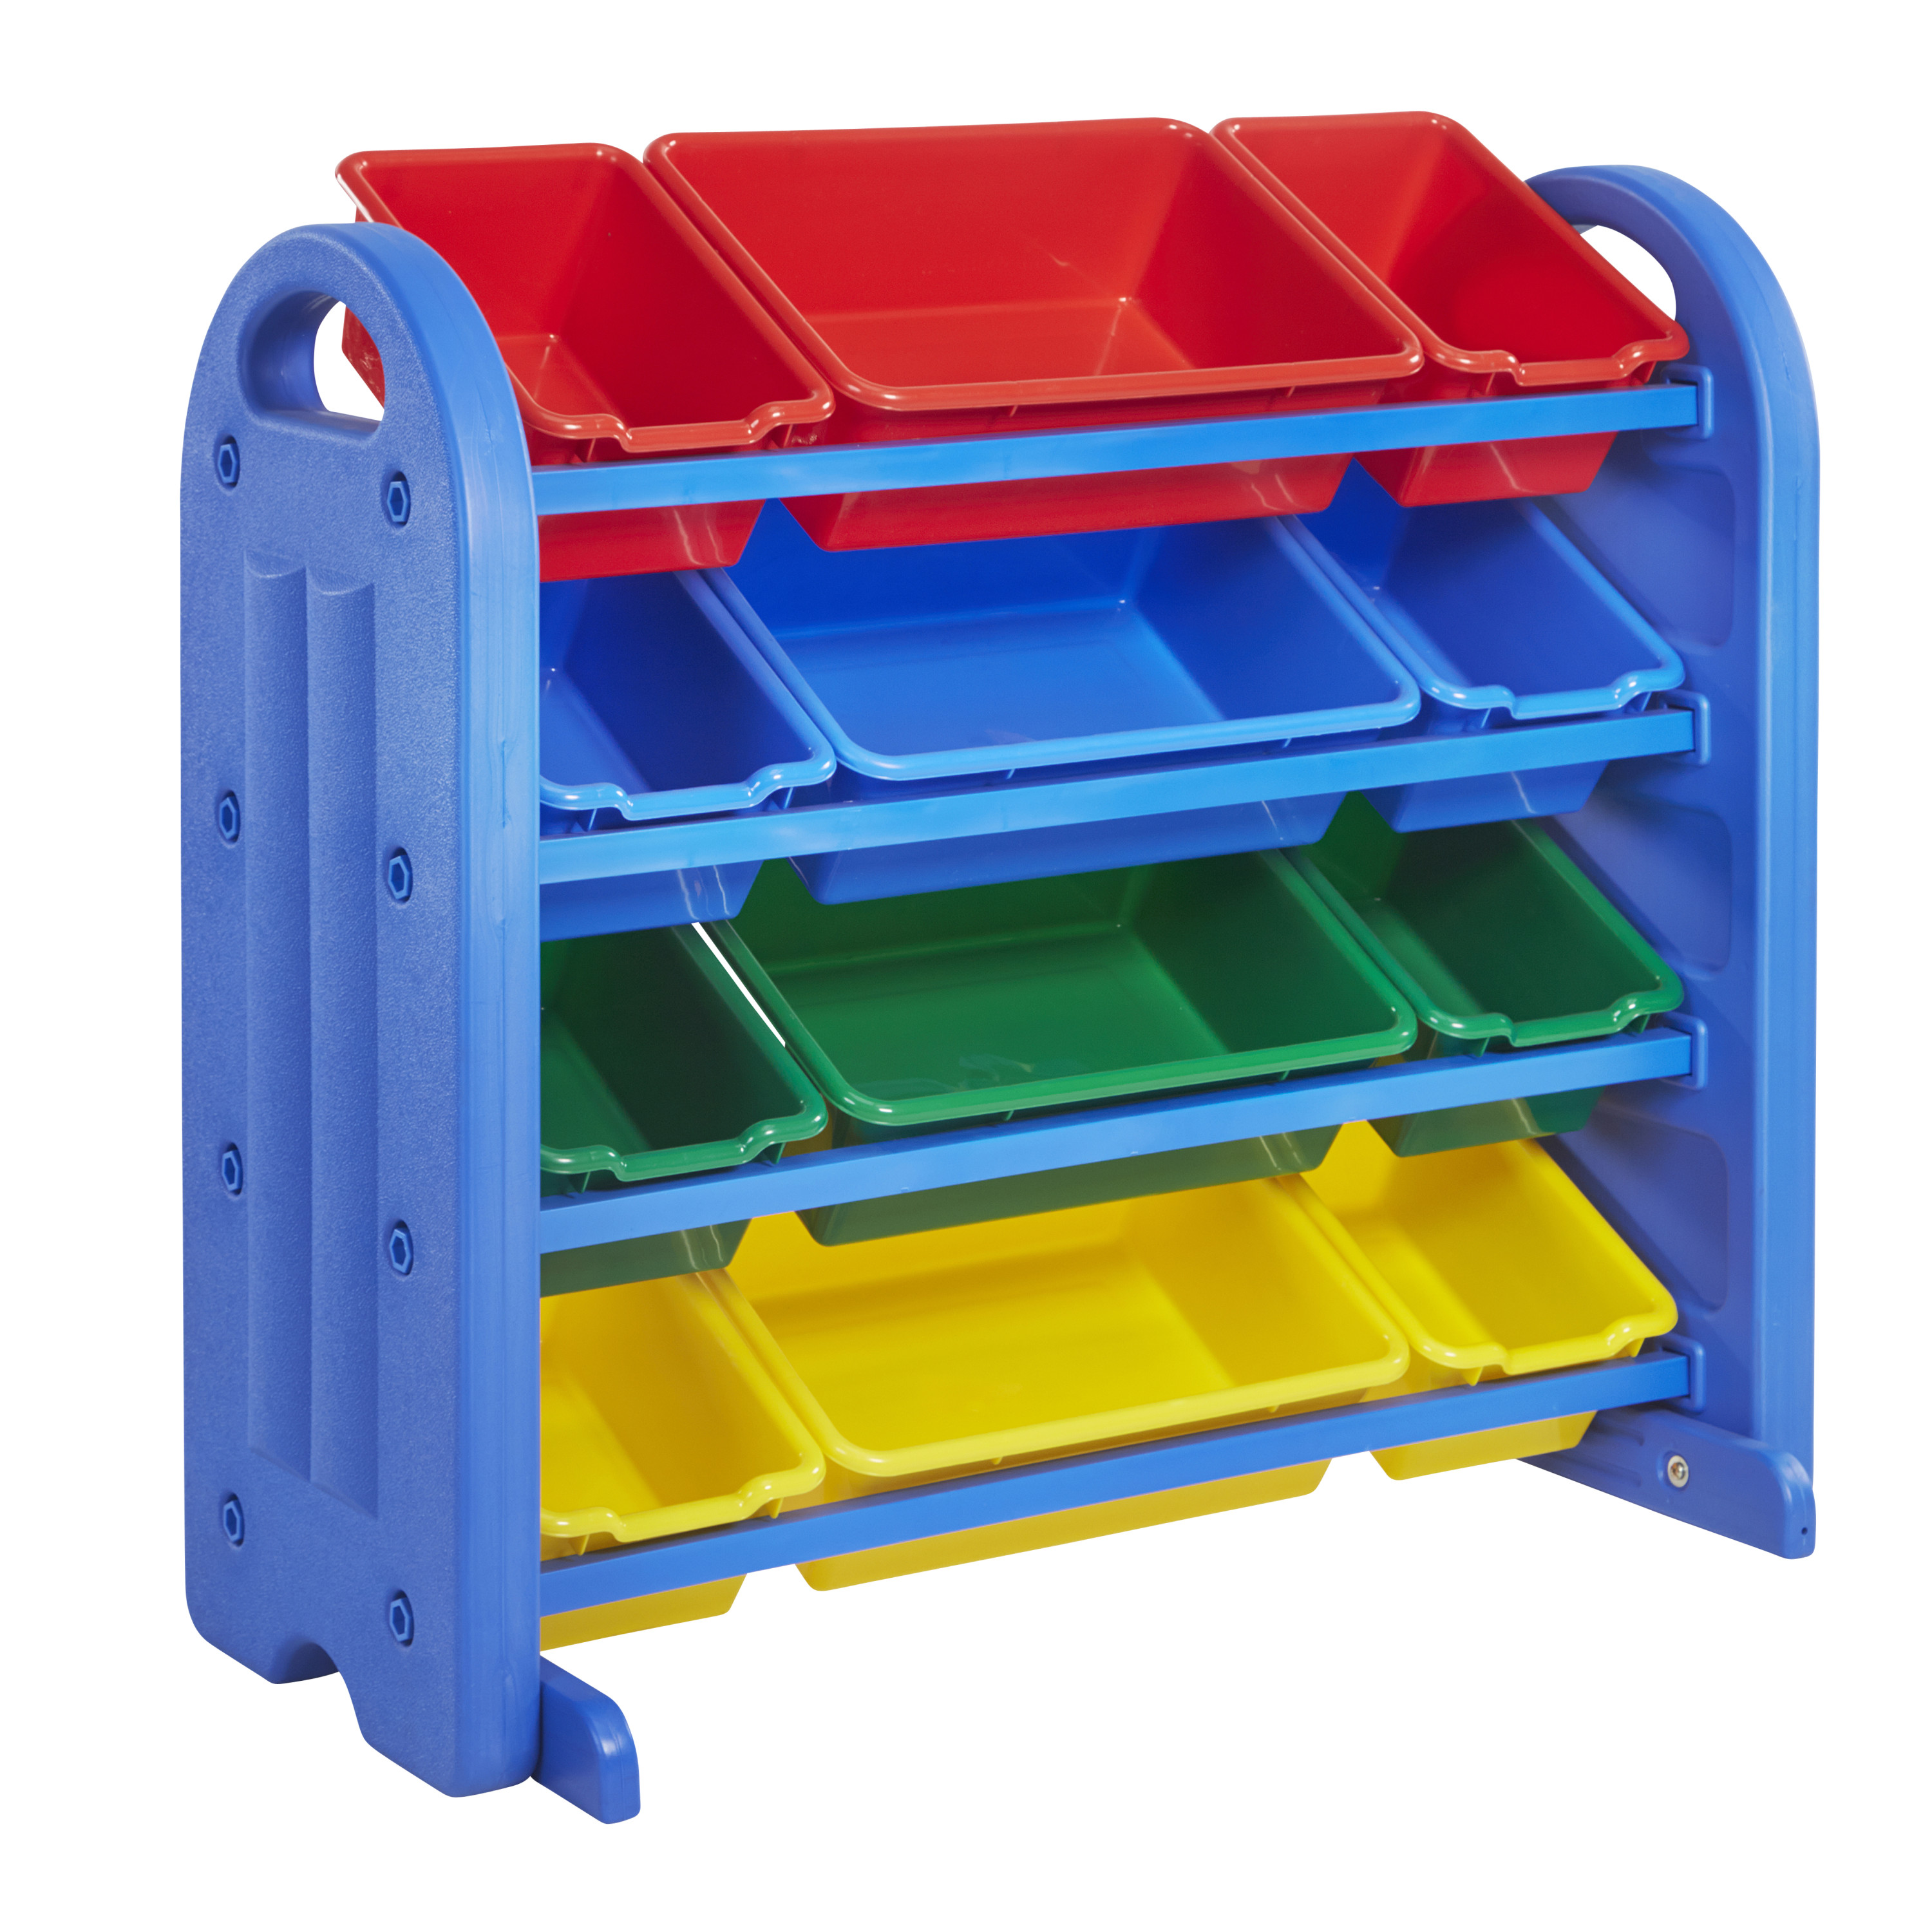 4-Tier Storage Organizer with Assorted Bins - Blue